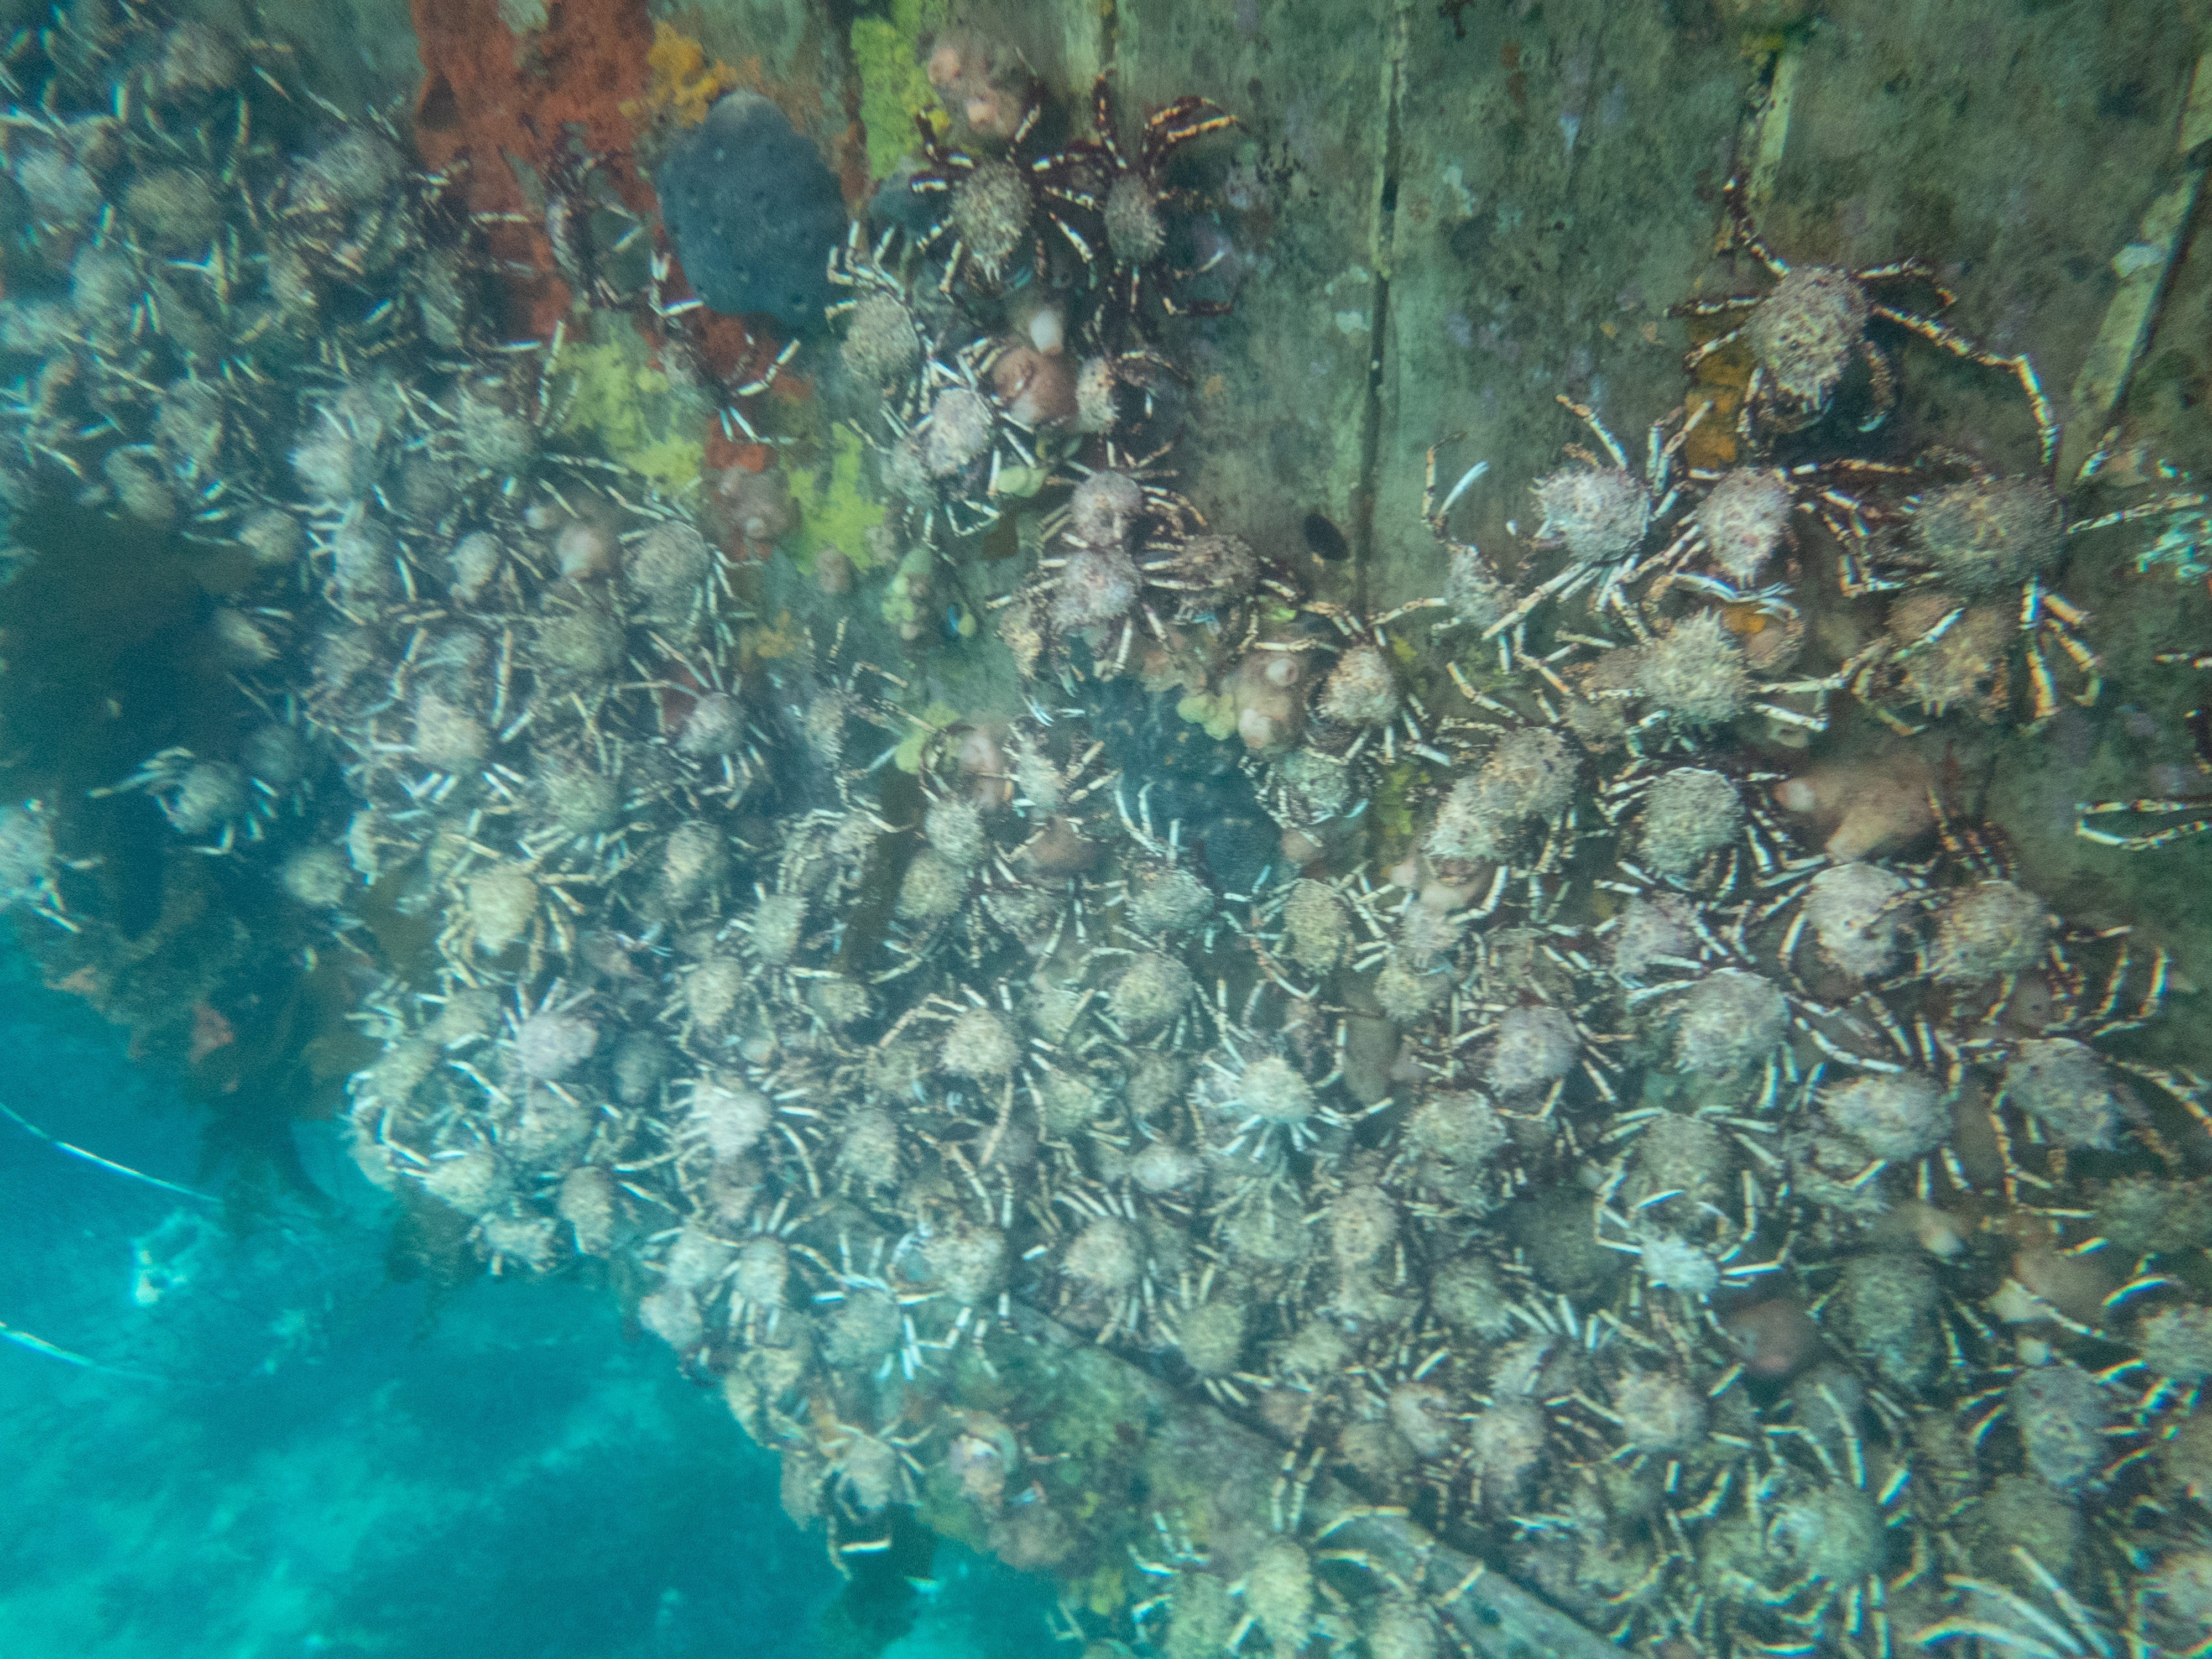 Aggregation of spider crabs